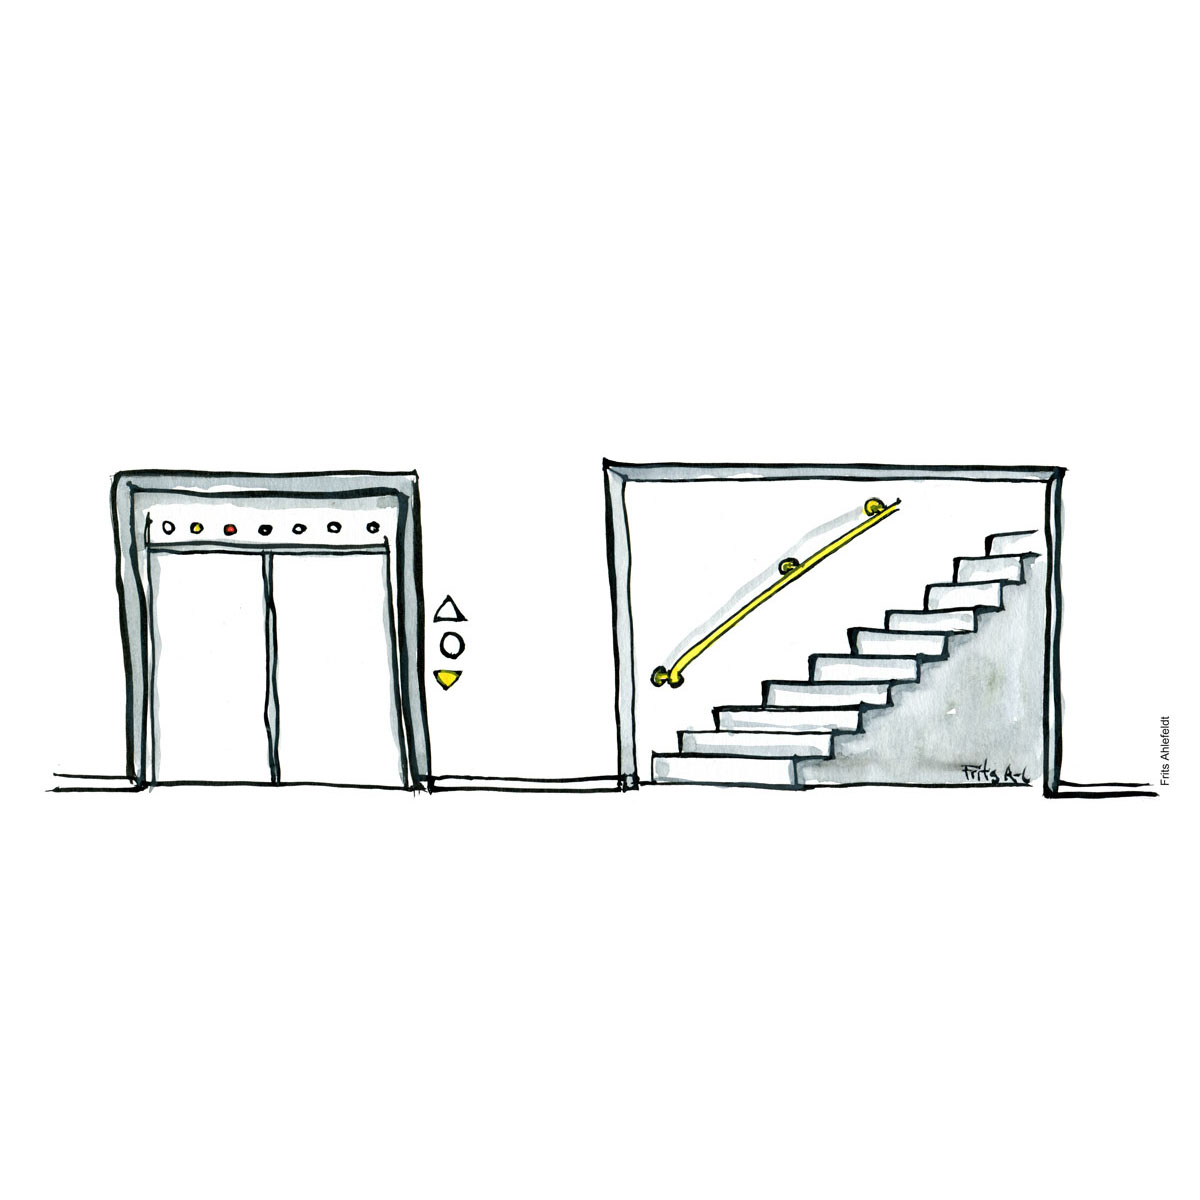 Drawing of an elevator and a stairway. Choices and mindsets. Handmade color illustration by Frits Ahlefeldt